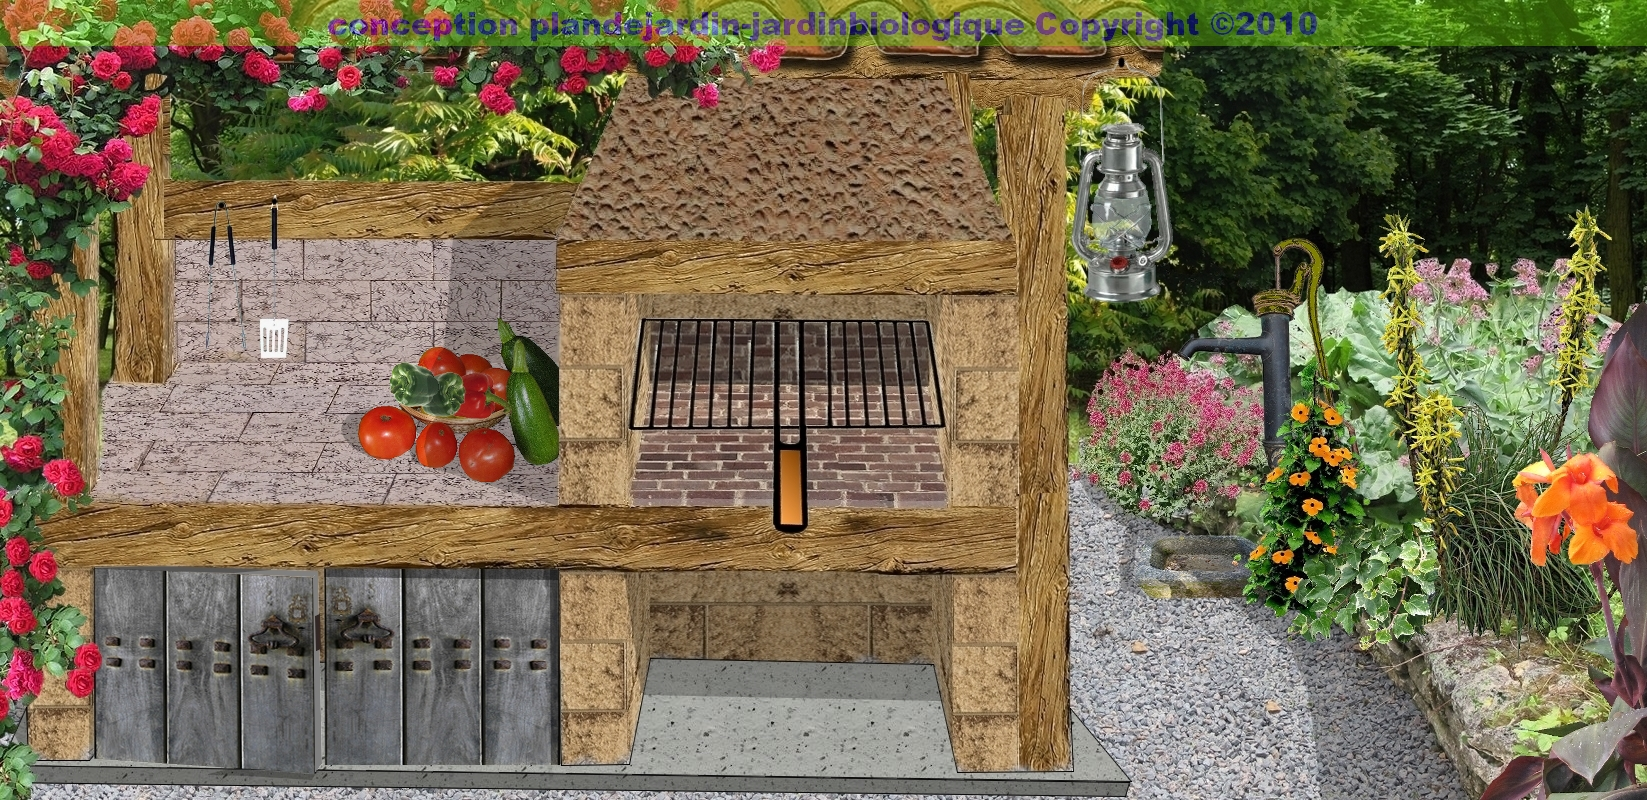 Construire Un Barbecue Barbecue En Pierre - Barbecue de jardin en pierre